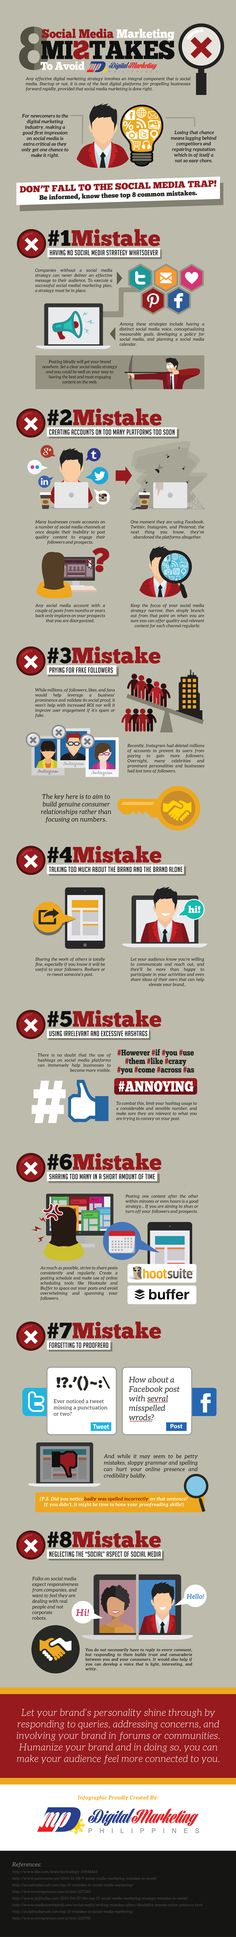 8 Social Media Marketing Mistakes to Avoid (Infographic)   http://weathertightroofinginc.com